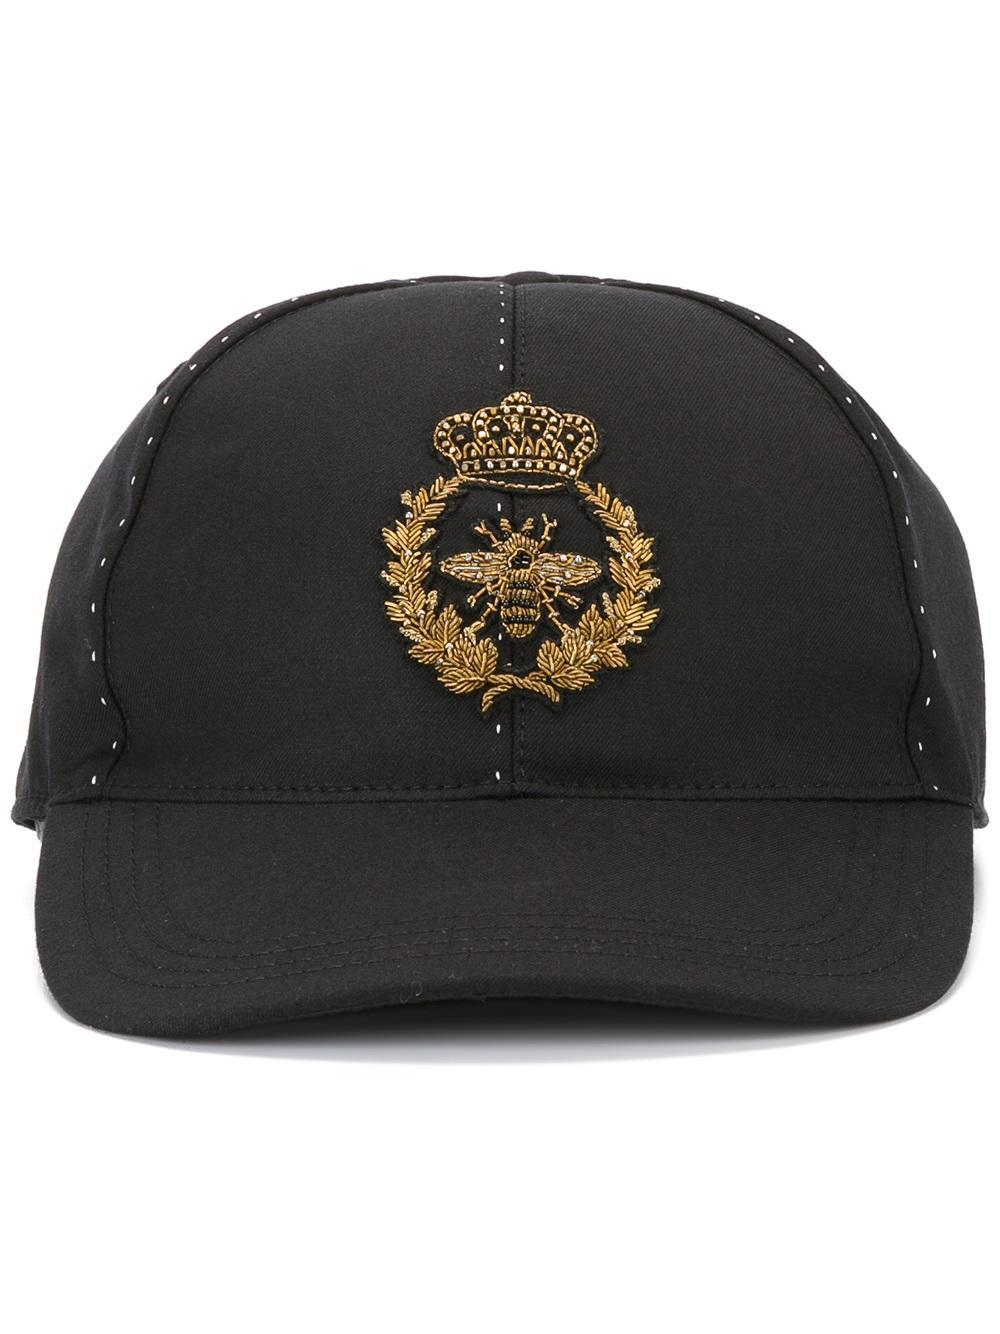 927715f824f Lyst - Dolce   Gabbana Embroidered Crown   Bee Baseball Cap in Black ...